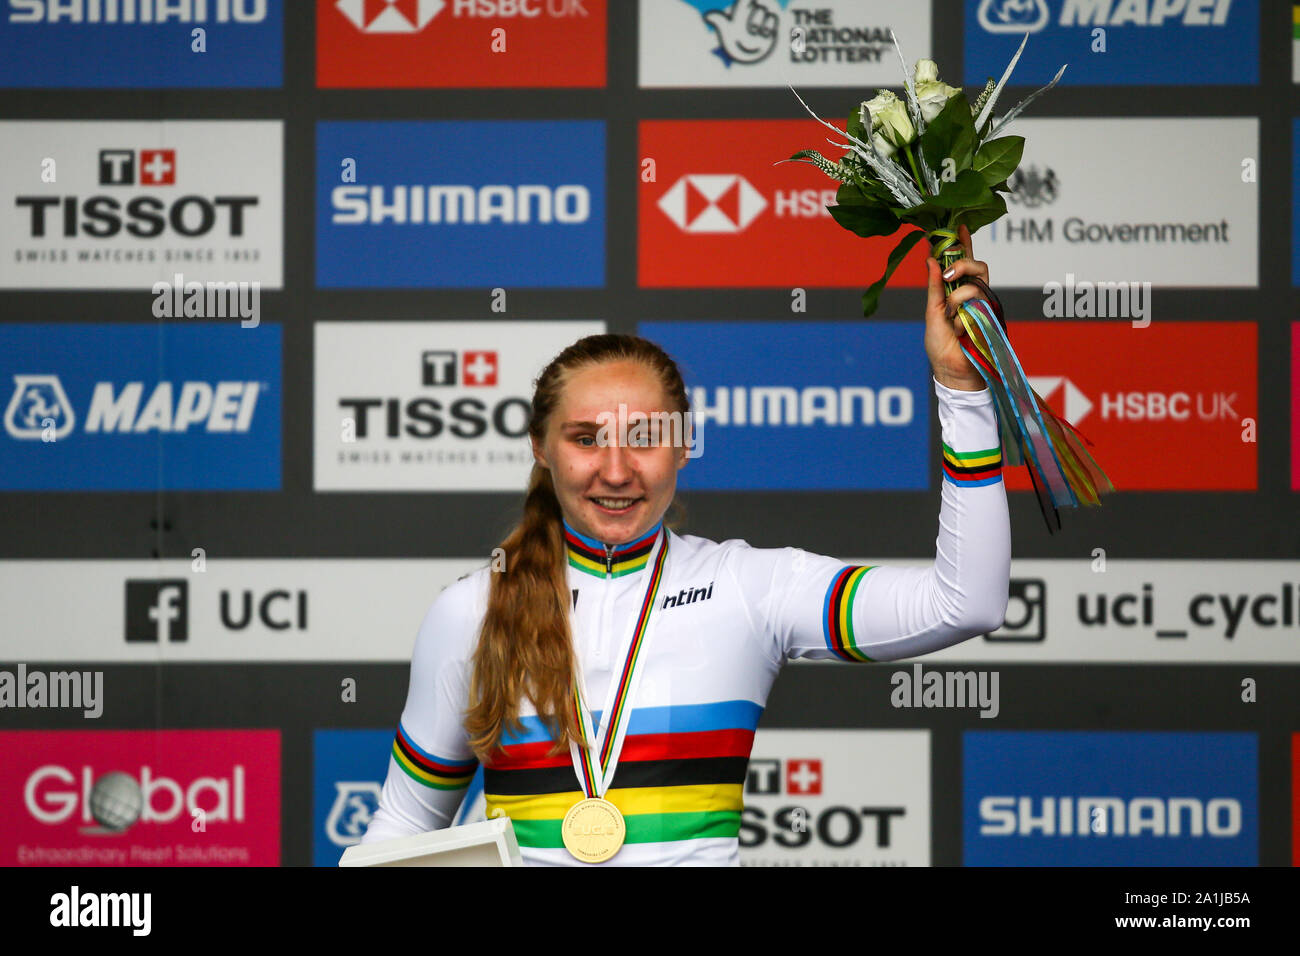 Harrogate, UK. 27th September 2019. Megan Jastrab  of the USA takes Gold in the 2019 UCI Road World Championships Womens Junior Road Race. September 27, 2019 Credit Dan-Cooke/Alamy Live News Stock Photo